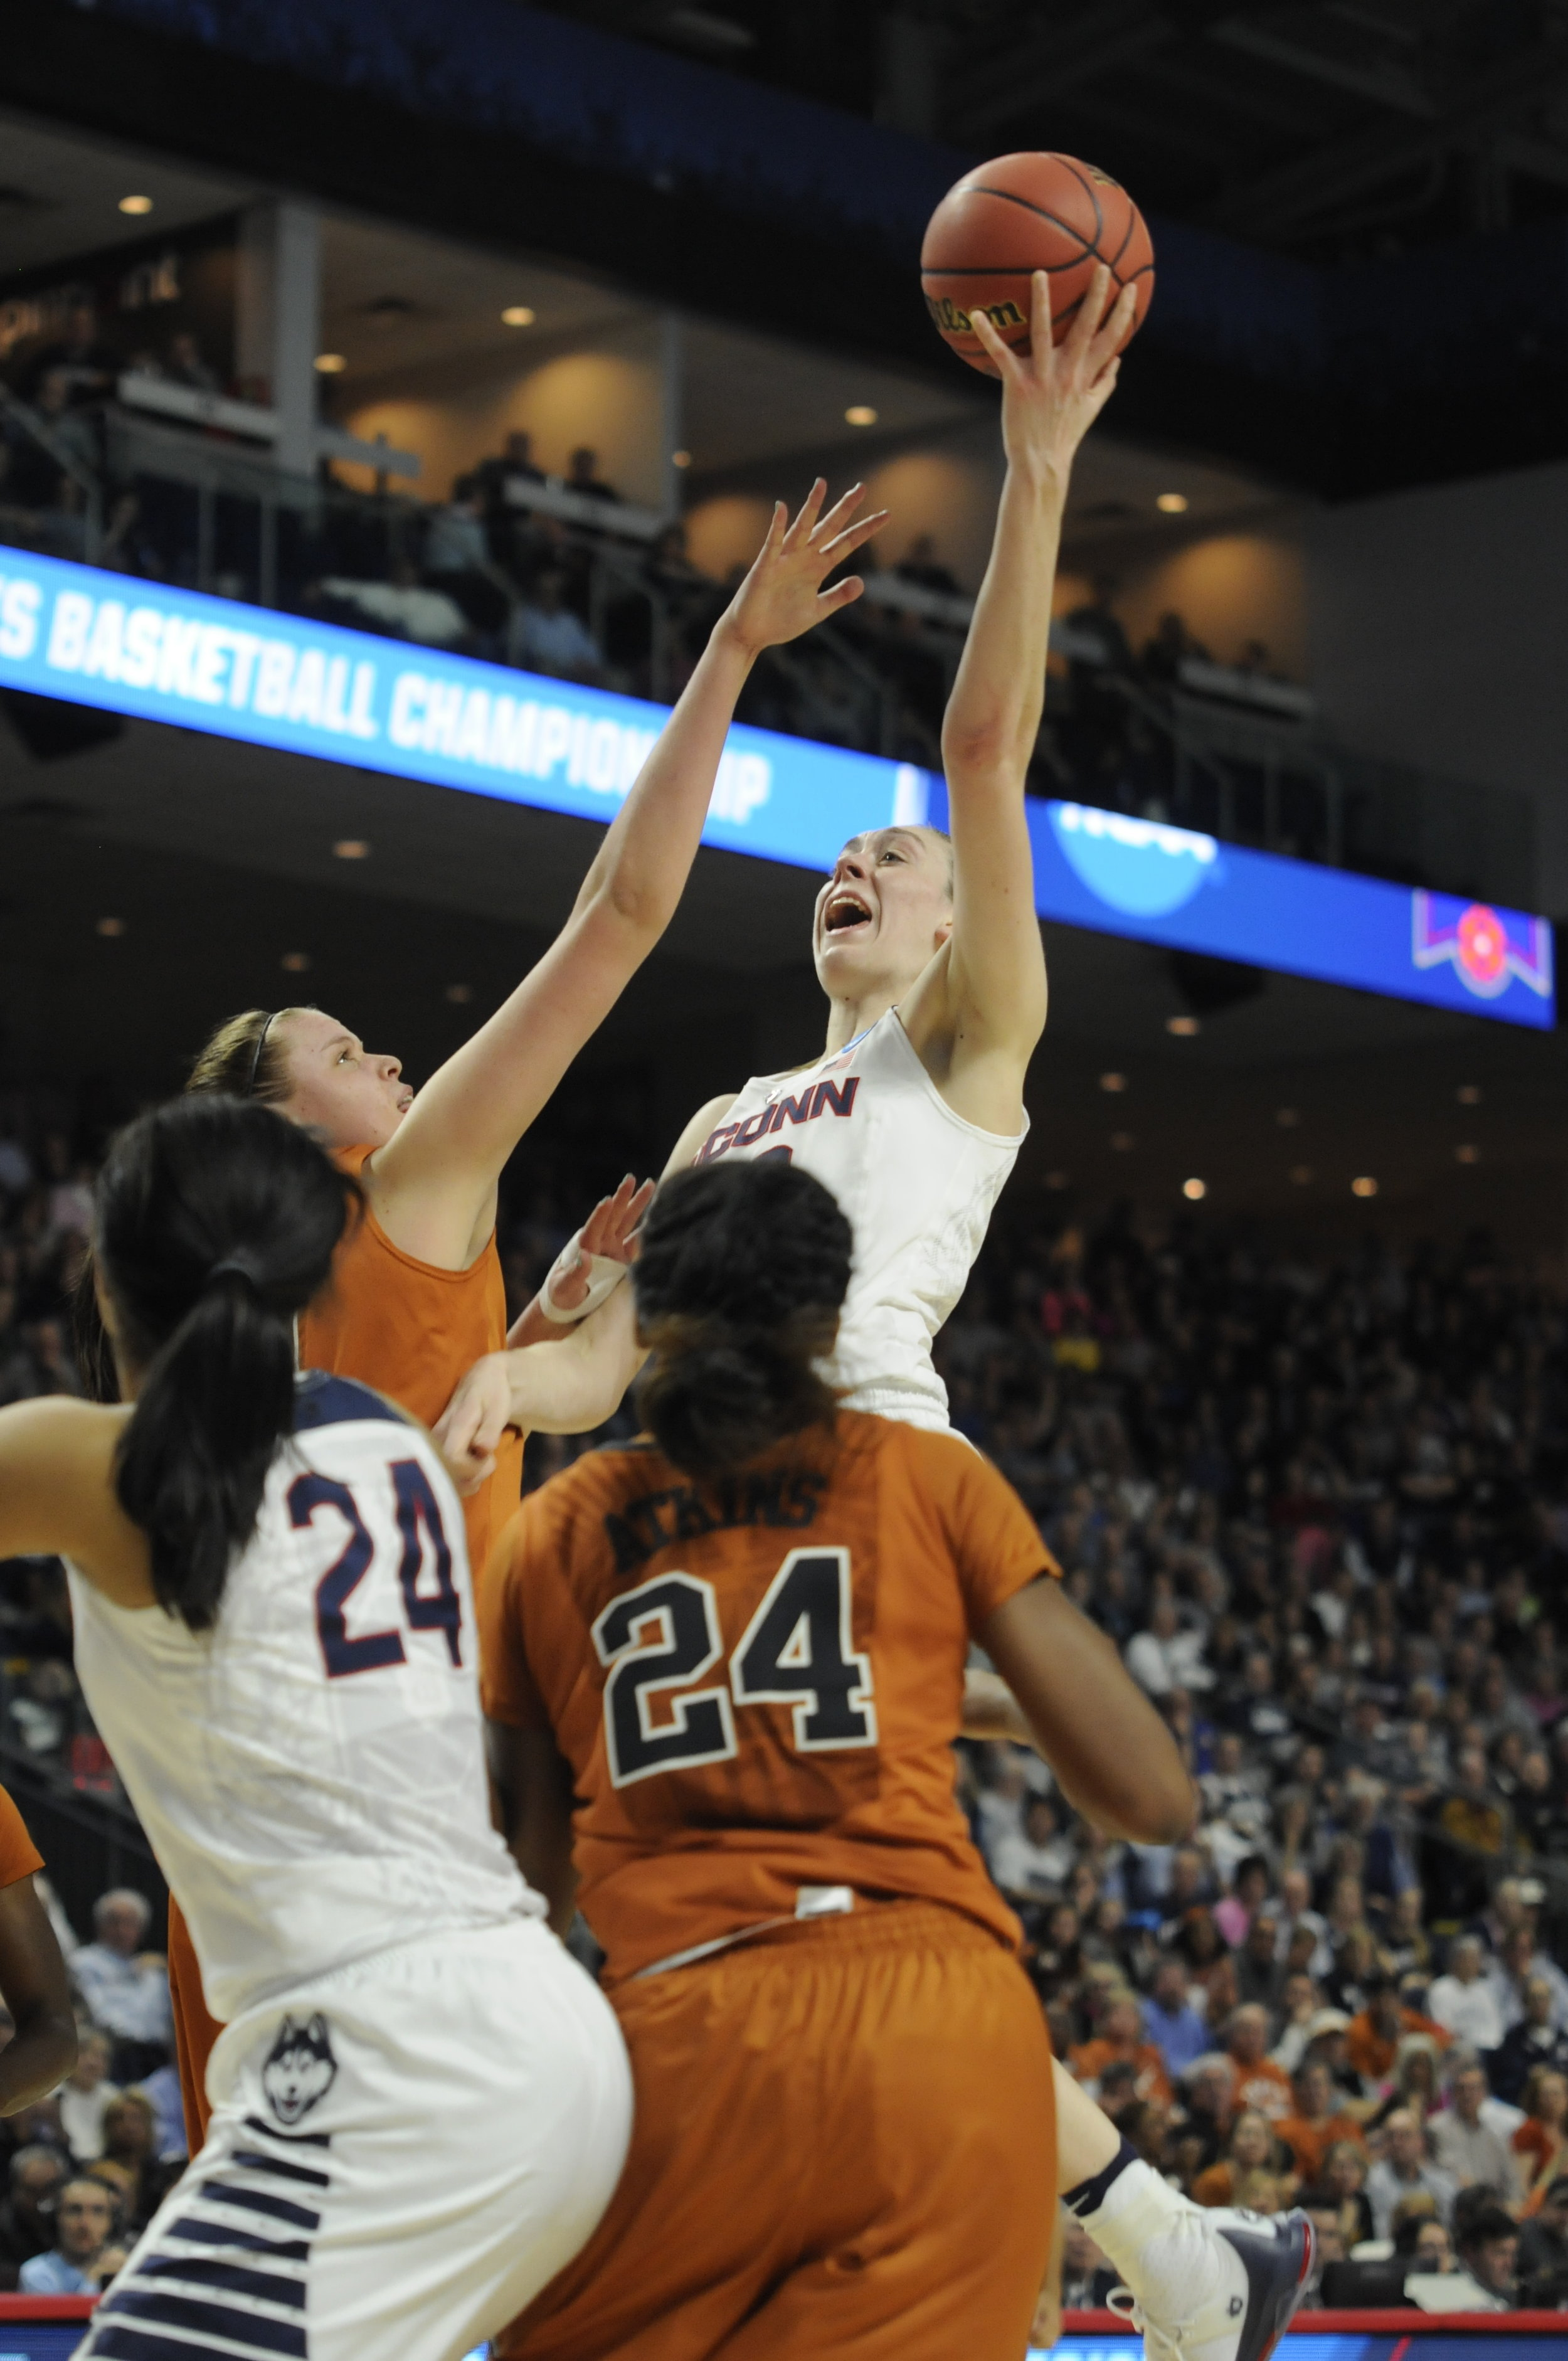 Connecticut forward Breanna Stewart (30) goes for a rebound during an NCAA tournament quarterfinal game against Texas on March 28, 2016.Stewart finished with 21 points, 13 rebounds,5 assists, 3 blocks, and 3 steals in UConn's 86-65 win.